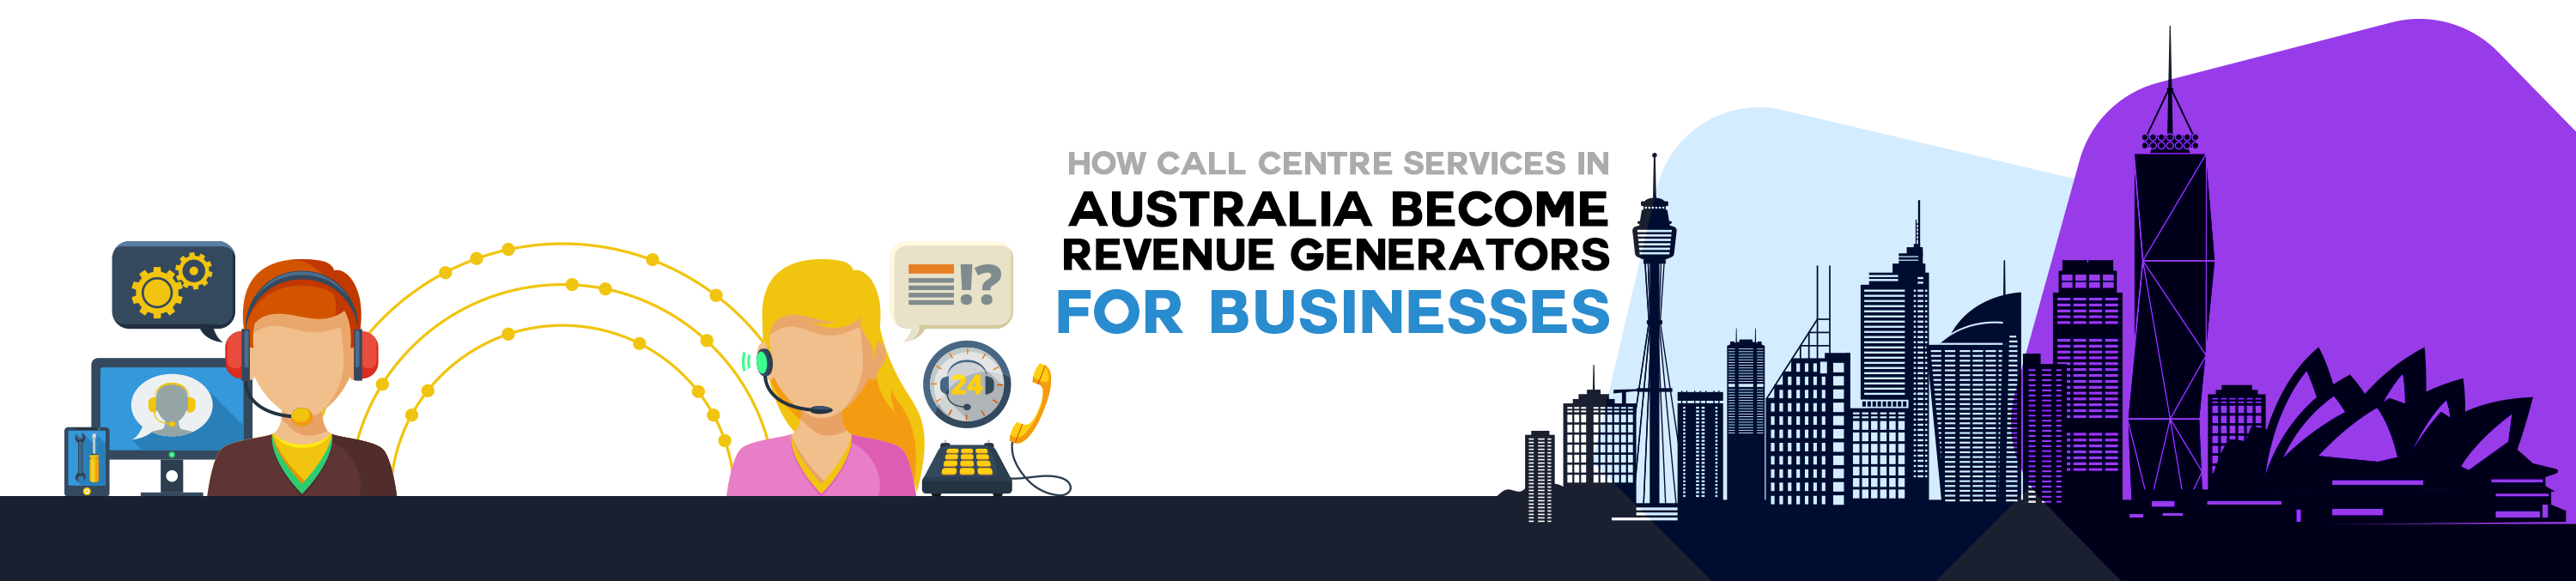 How to Call Centre Services In Australia Become Revenue Generators For Businesses